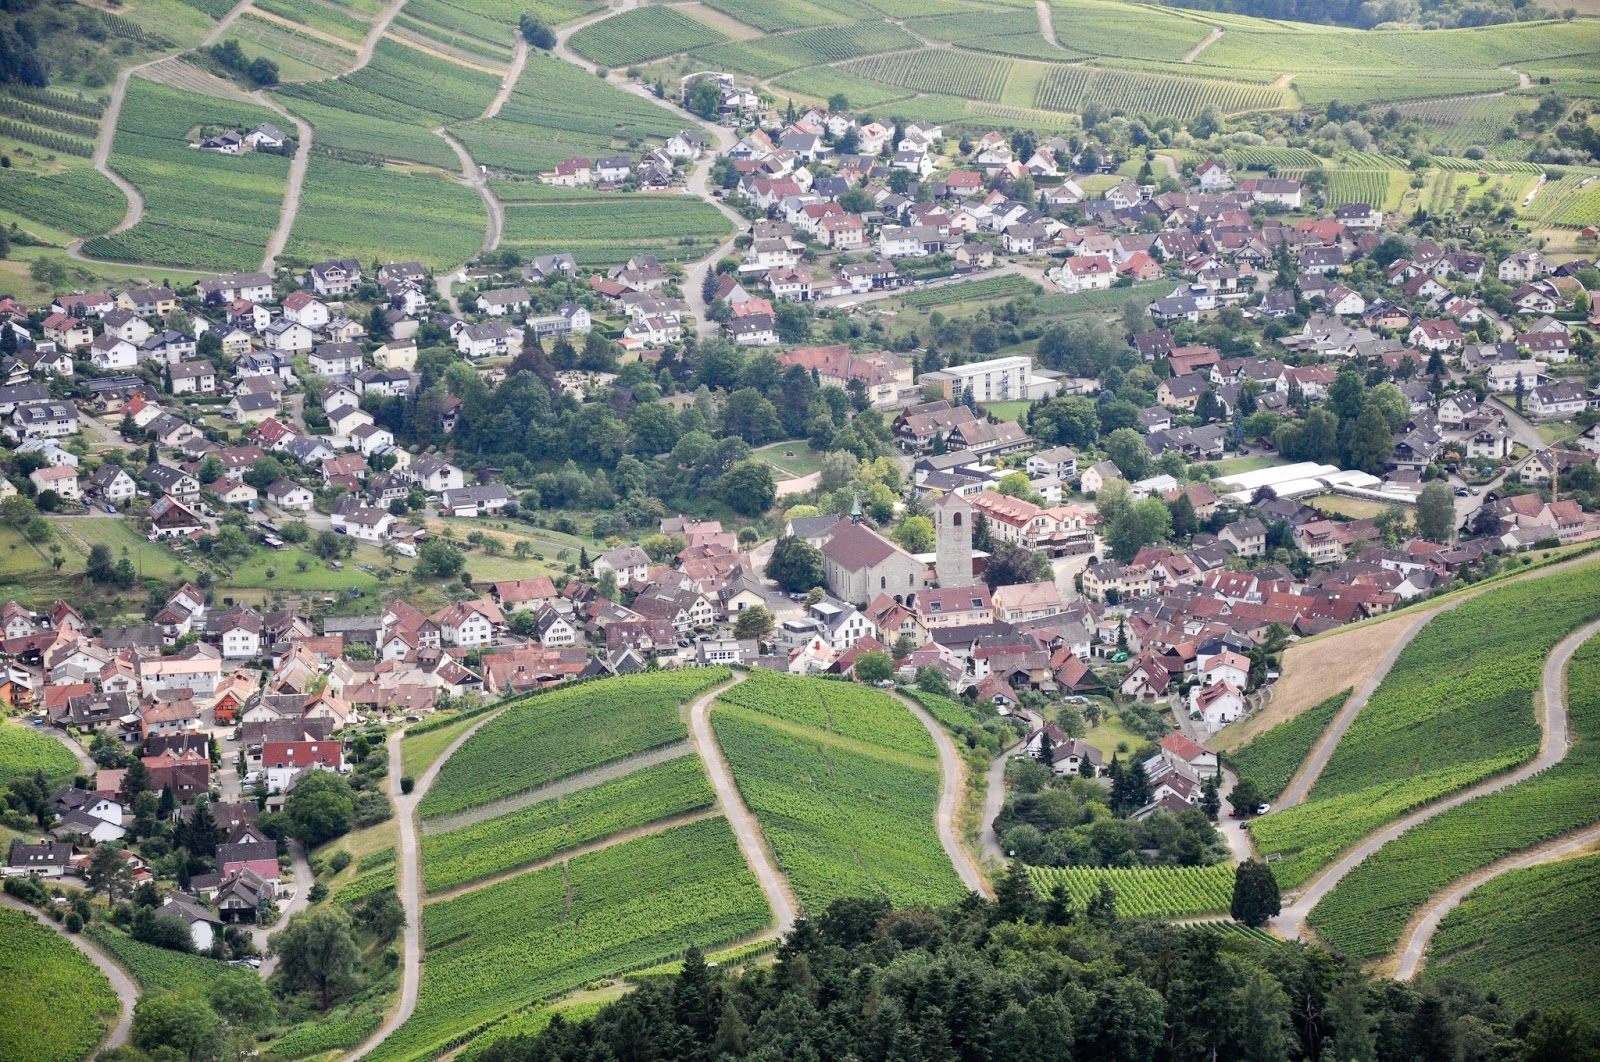 A village seen from the top of the Yburg Castle tower, Yburg, Germany